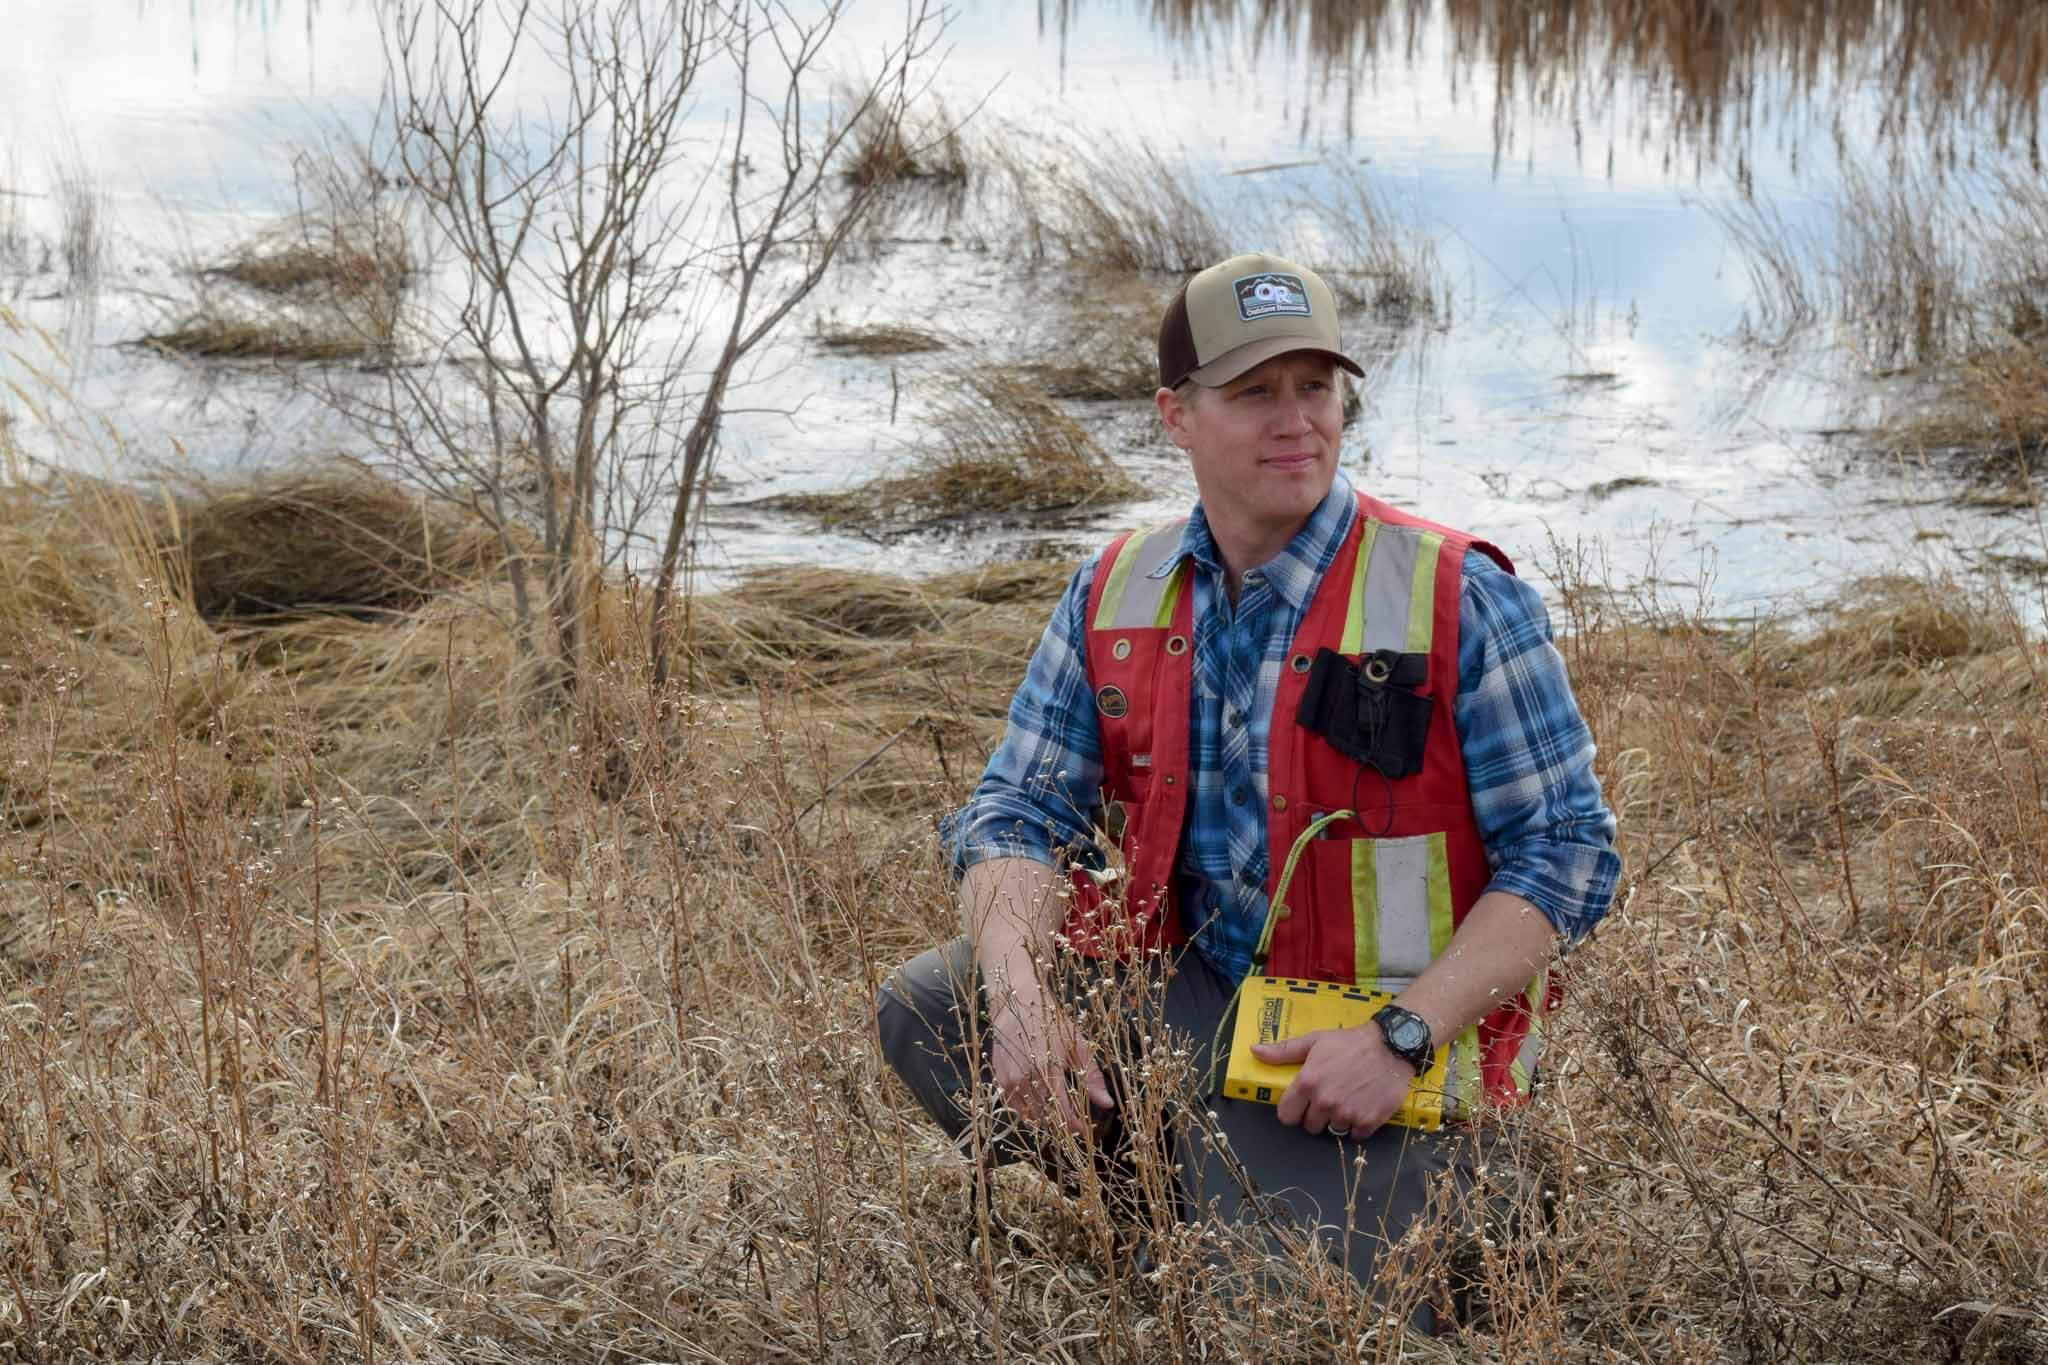 Dr. Scott Ketcheson, an Athabasca University researcher and the Canada Research Chair in Hydrological Sustainability, has been awarded a contract from Suncor to study reclamation efforts at Lake Miwasin.